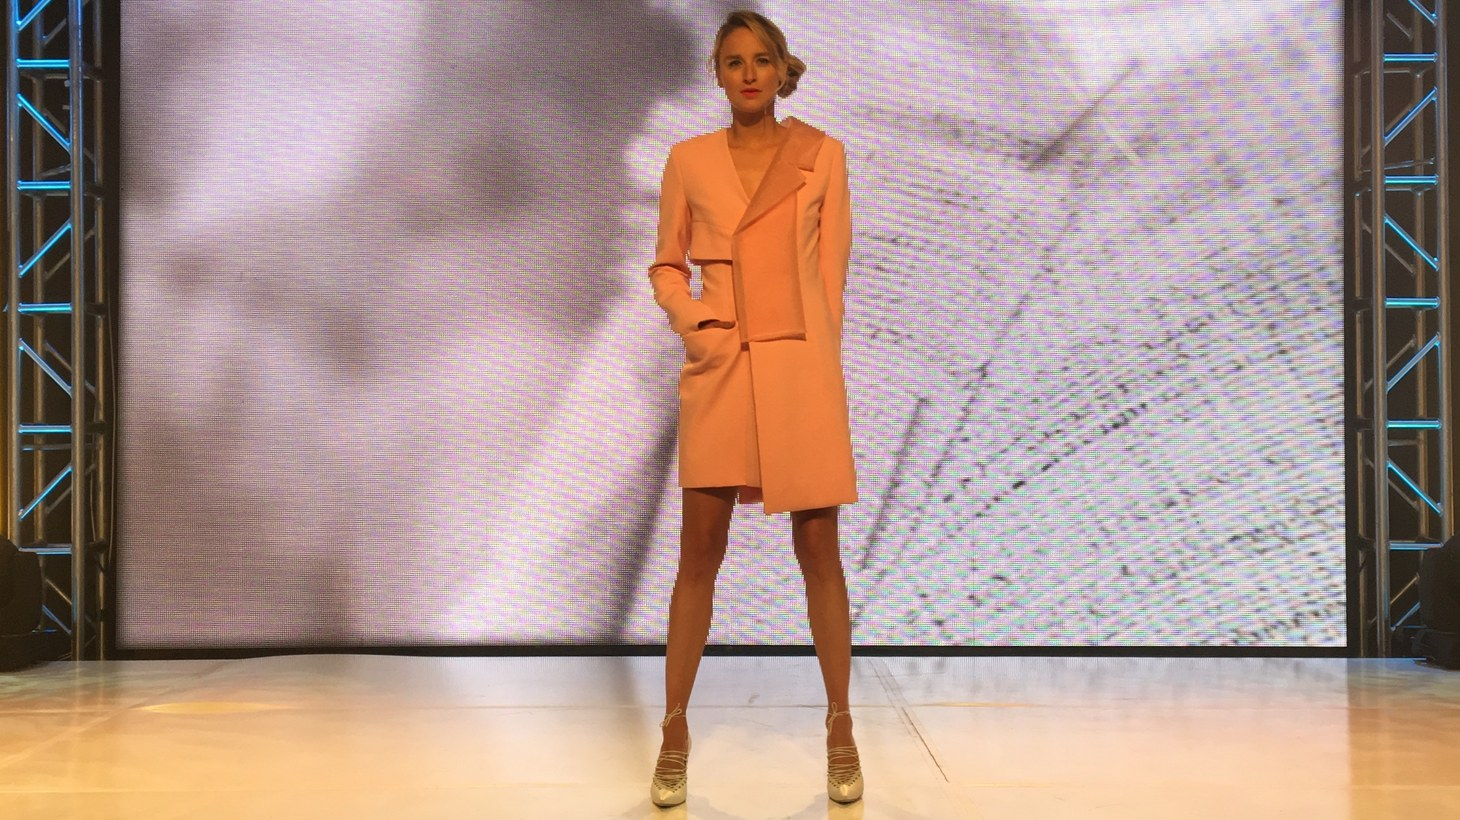 A model shows off the coral pink wool outfit with a silk lining designed by Oli Perez, a fashion student at Otis College of Art and Design. Perez's class worked with designer Jason Wu for nine months.